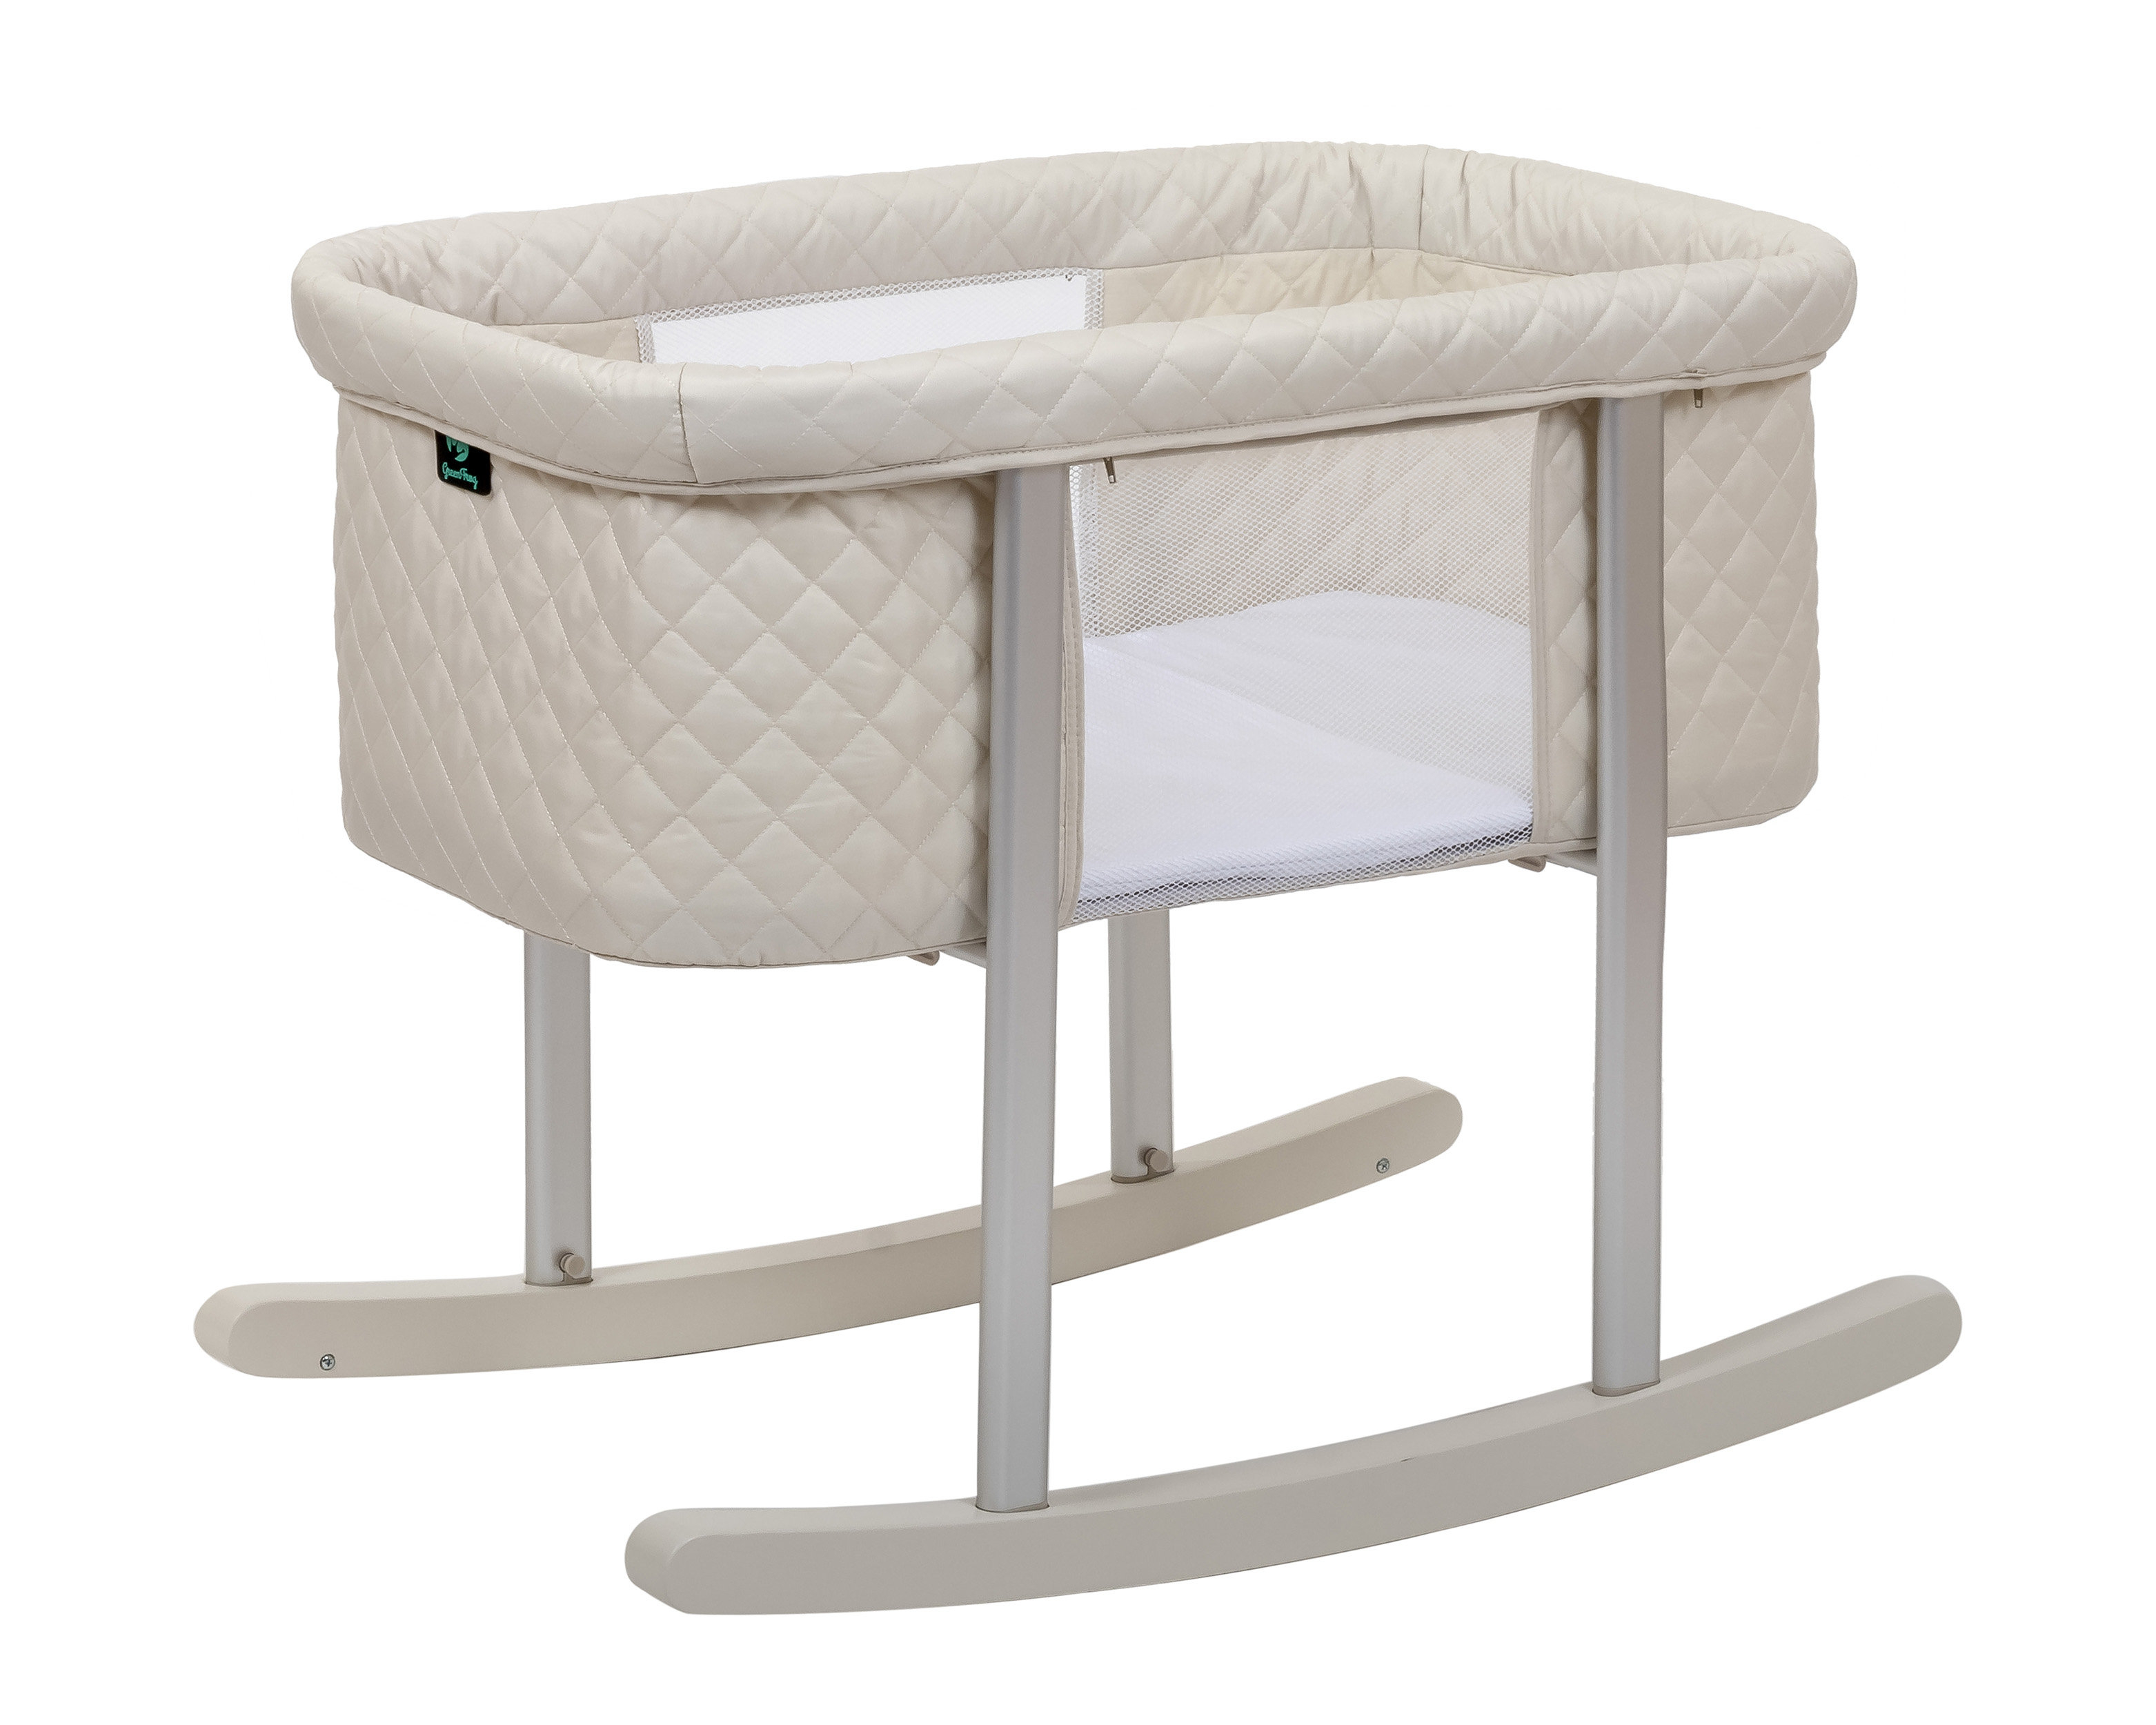 Mack & Milo Gaetan Diamond Baby Bassinet | Wayfair Pertaining To Bailey Mist Track Arm Skirted Swivel Gliders (View 14 of 25)